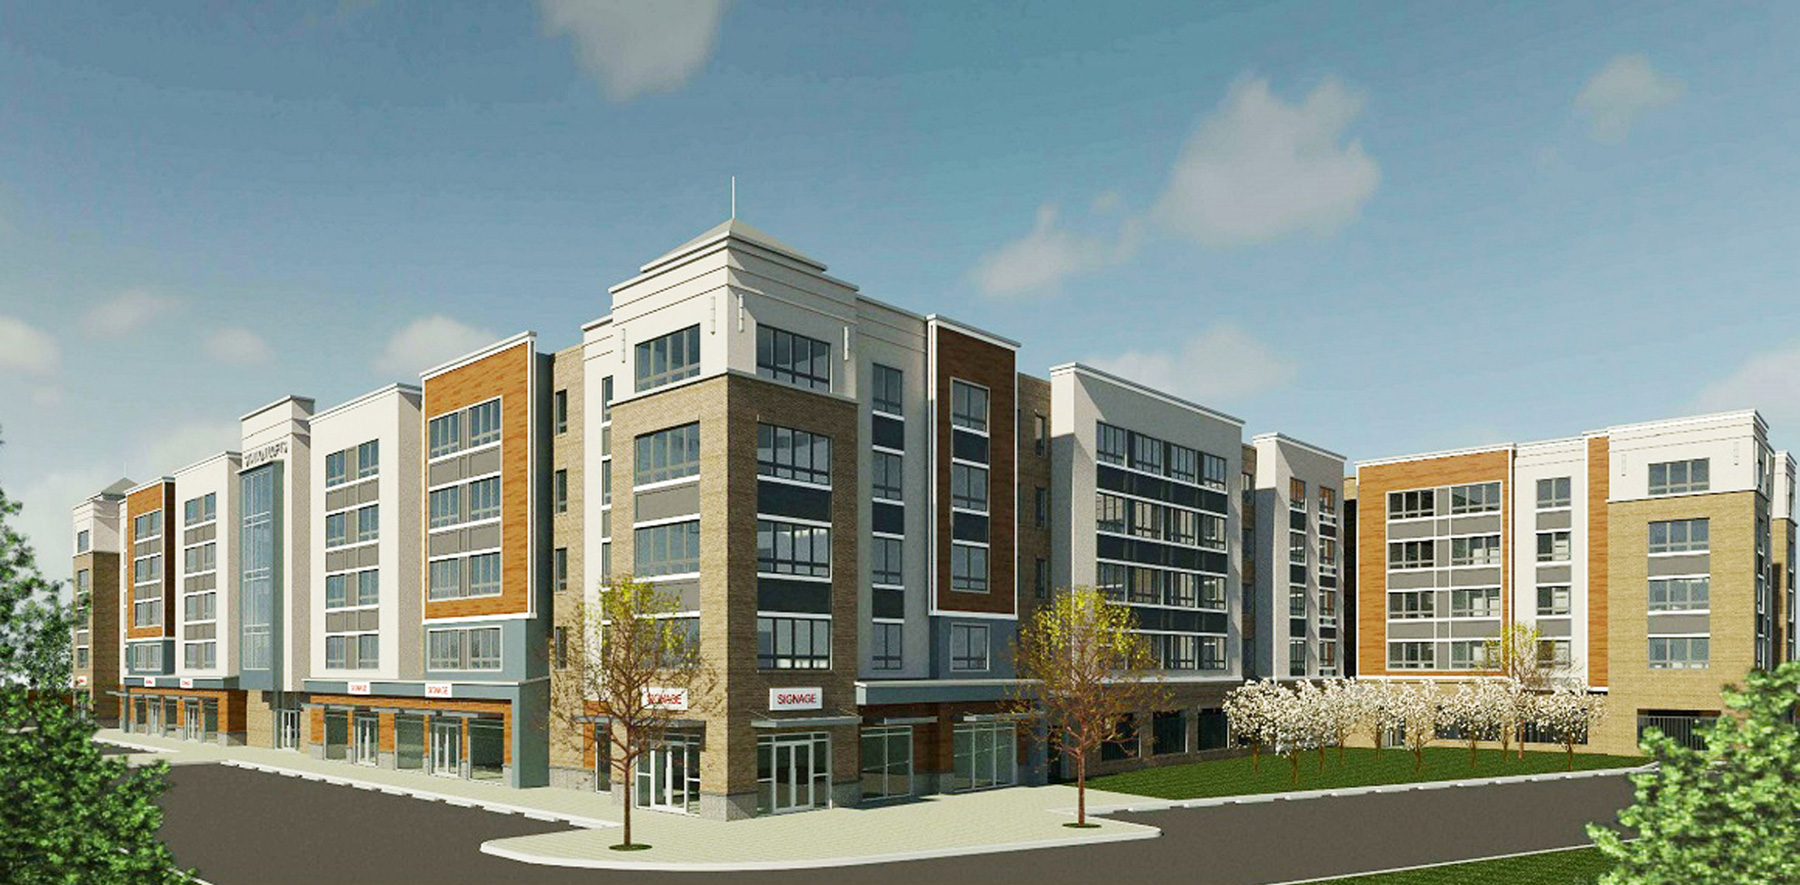 A rendering of the mixed-use development project in downtown Woodbridge. Courtesy of Prism Capital Partners, LLC.